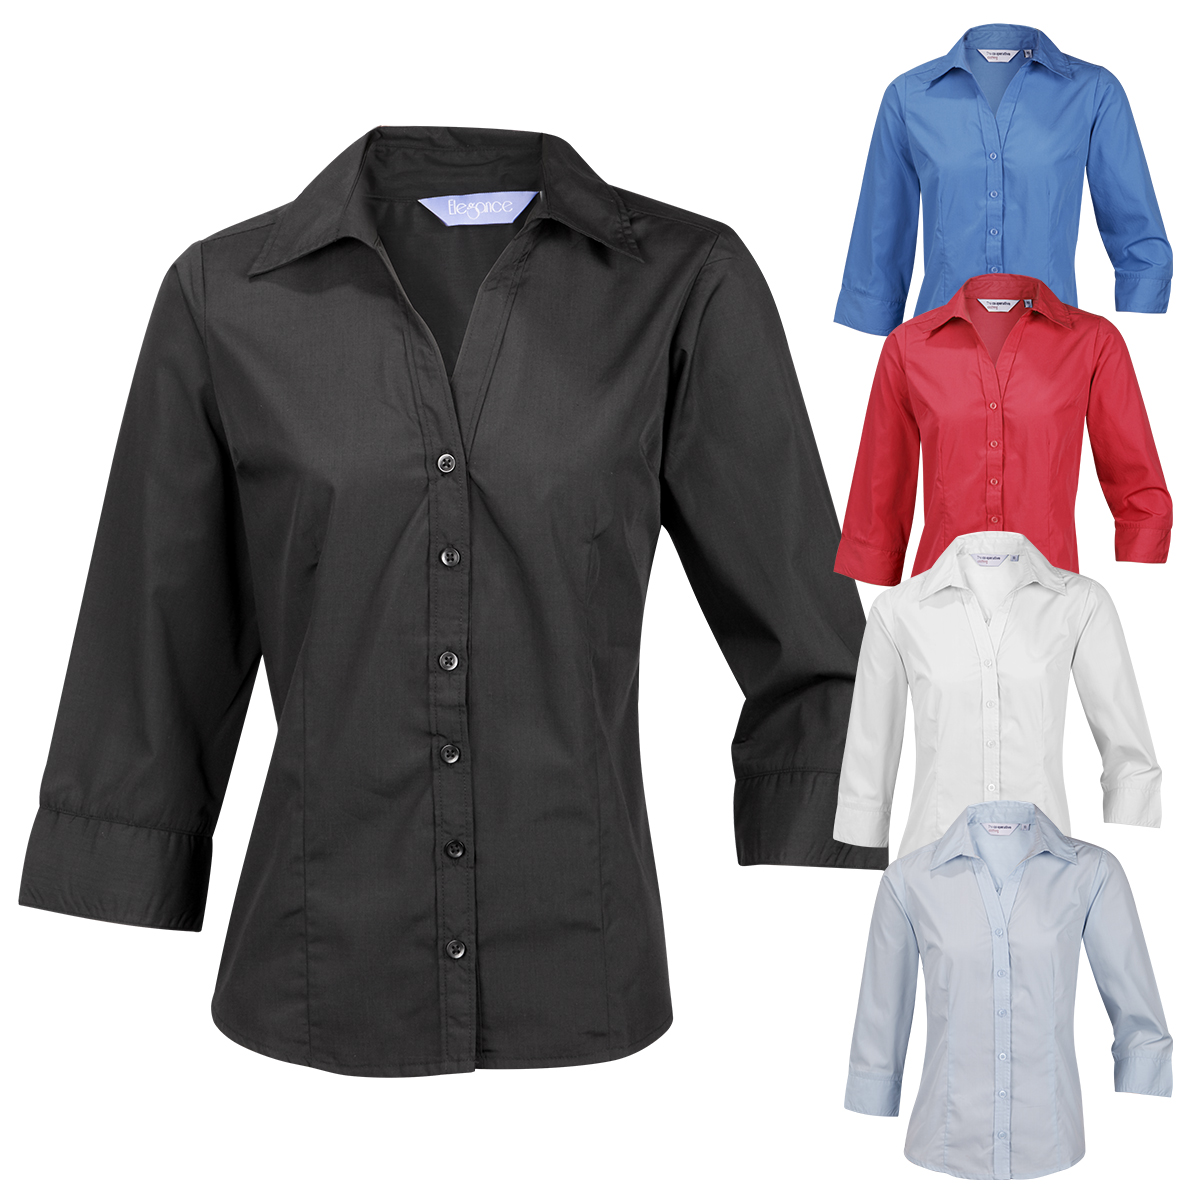 952814821a824 Ladies Womens Plus Size Blouse Shirt Top 3 4 Sleeve Work Office Formal Open  Neck